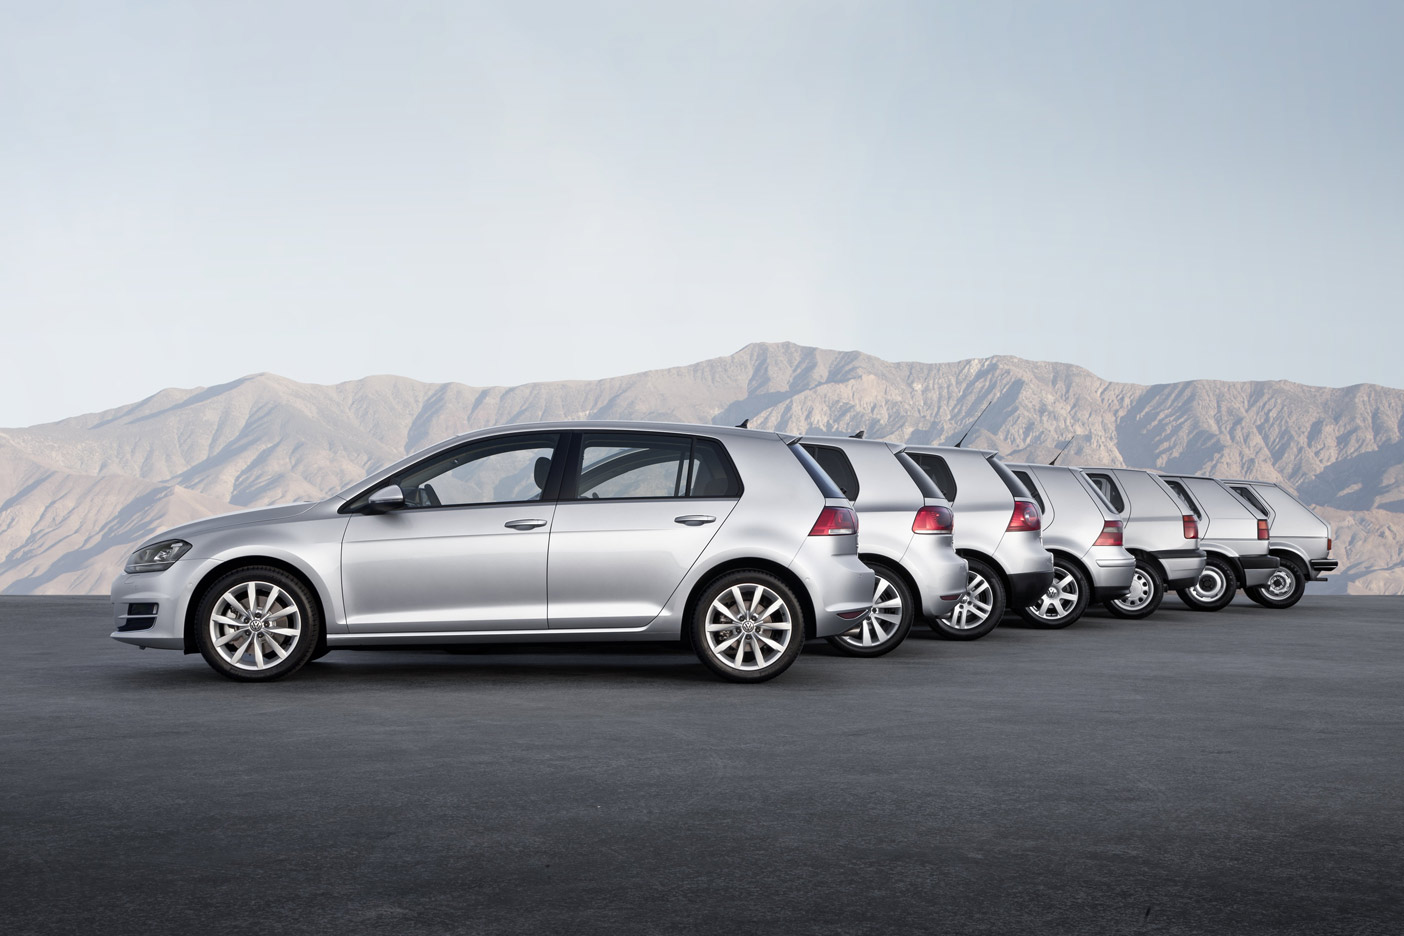 volkswagen-golf-7-generations